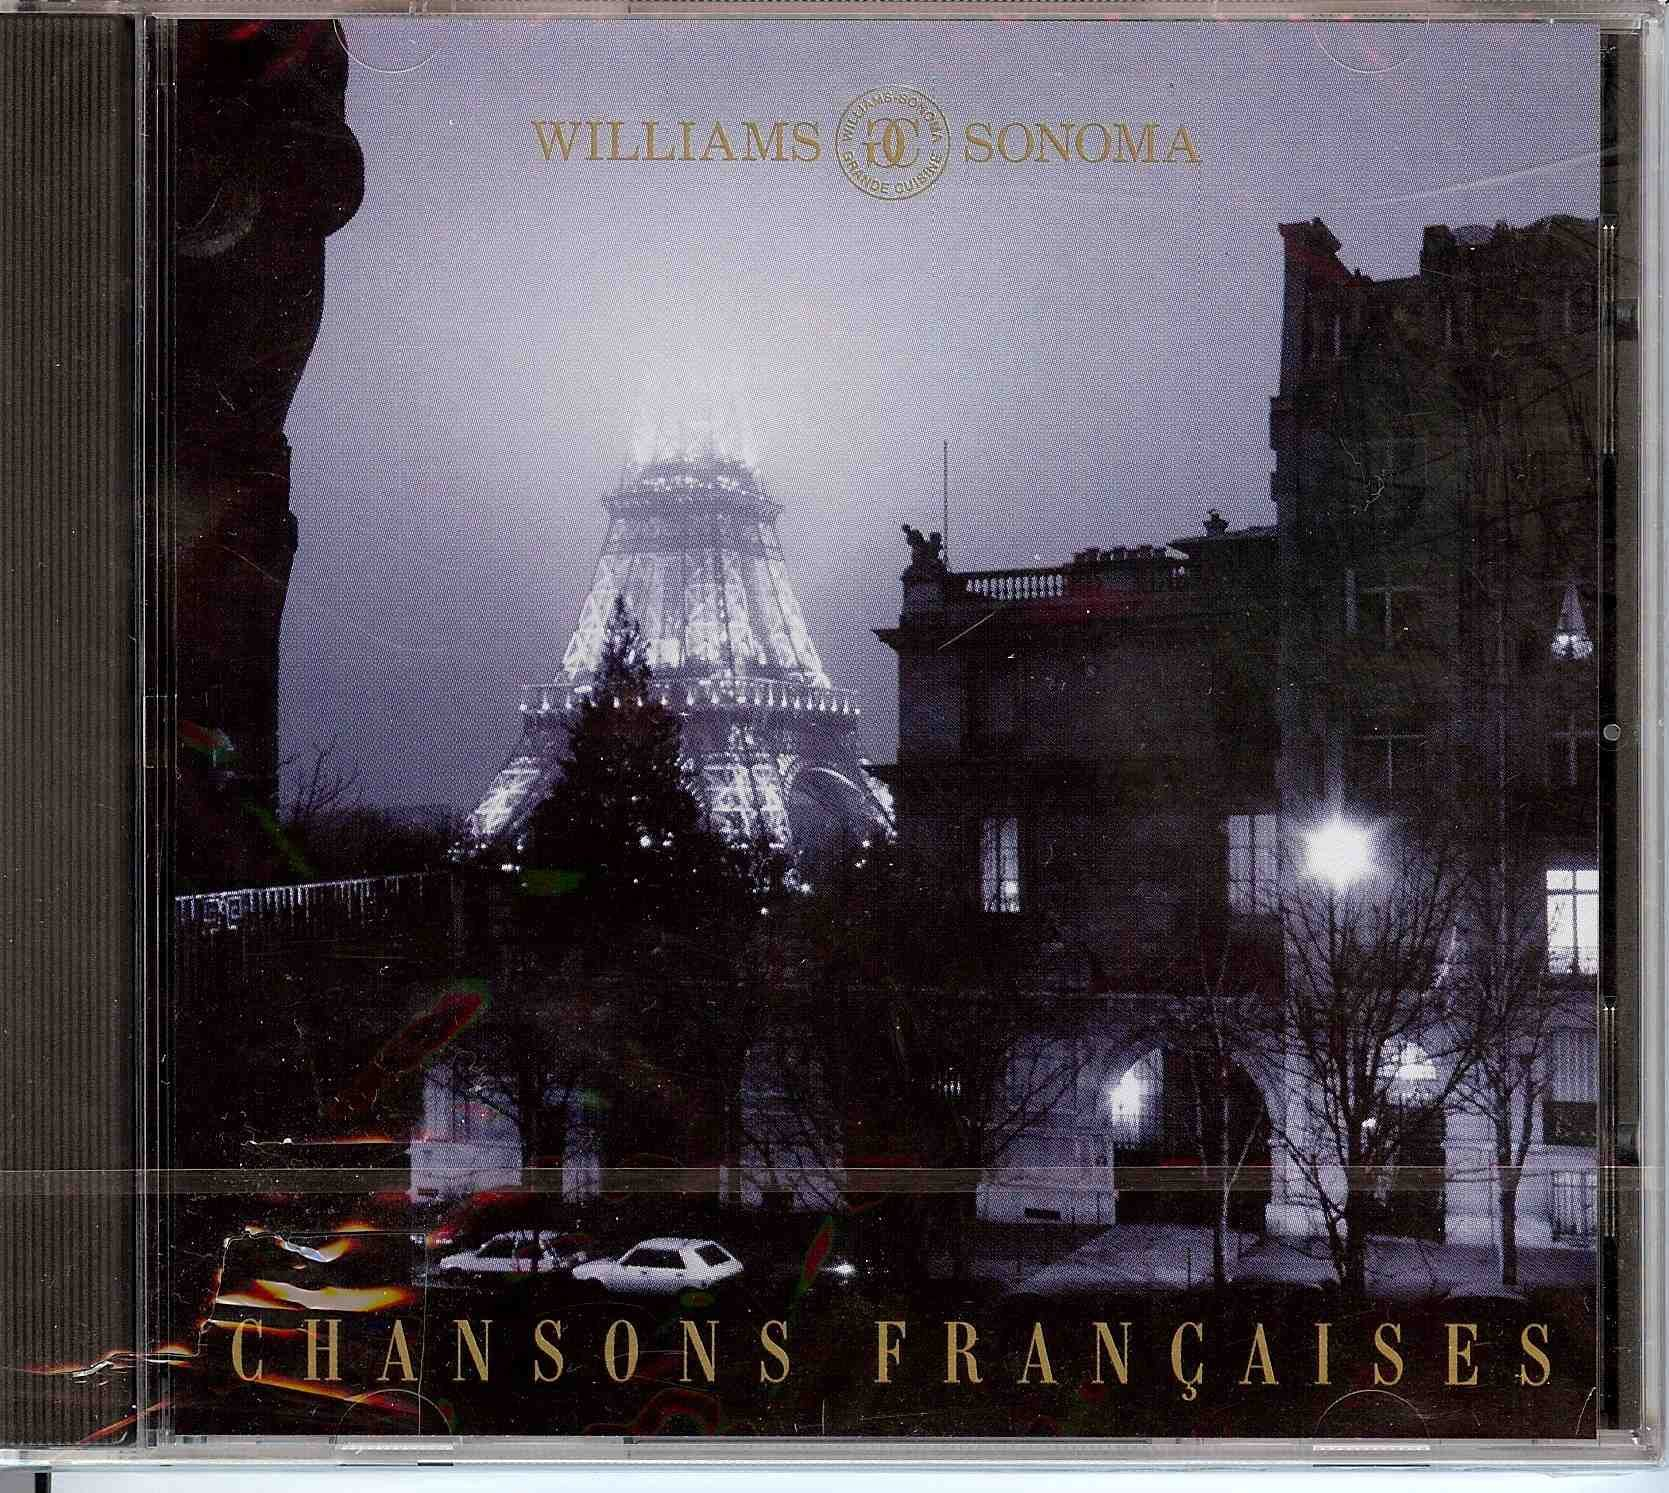 Willams-Sonoma: Chansons Francaises by Williams Sonoma/EMI